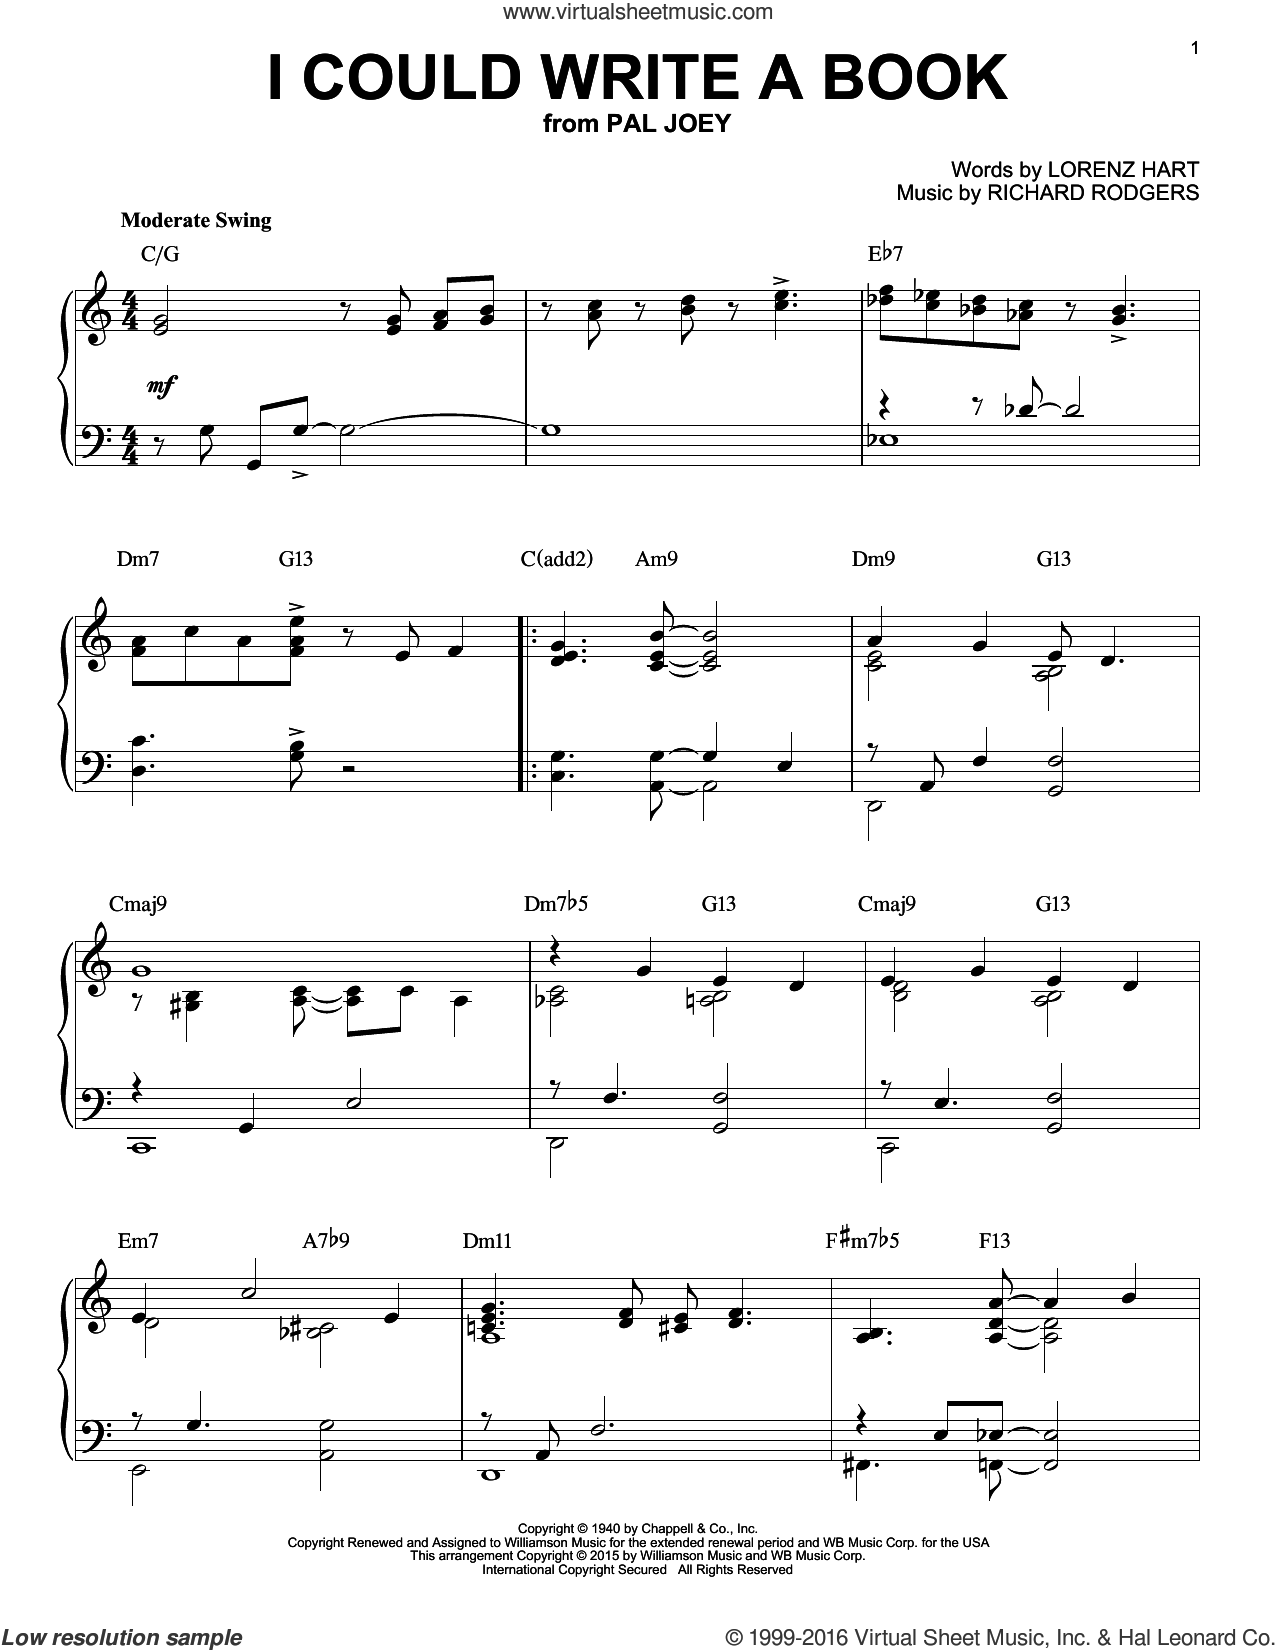 I Could Write A Book [Jazz version] (arr. Brent Edstrom) sheet music for piano solo by Richard Rodgers, Jerry Butler and Lorenz Hart, intermediate skill level